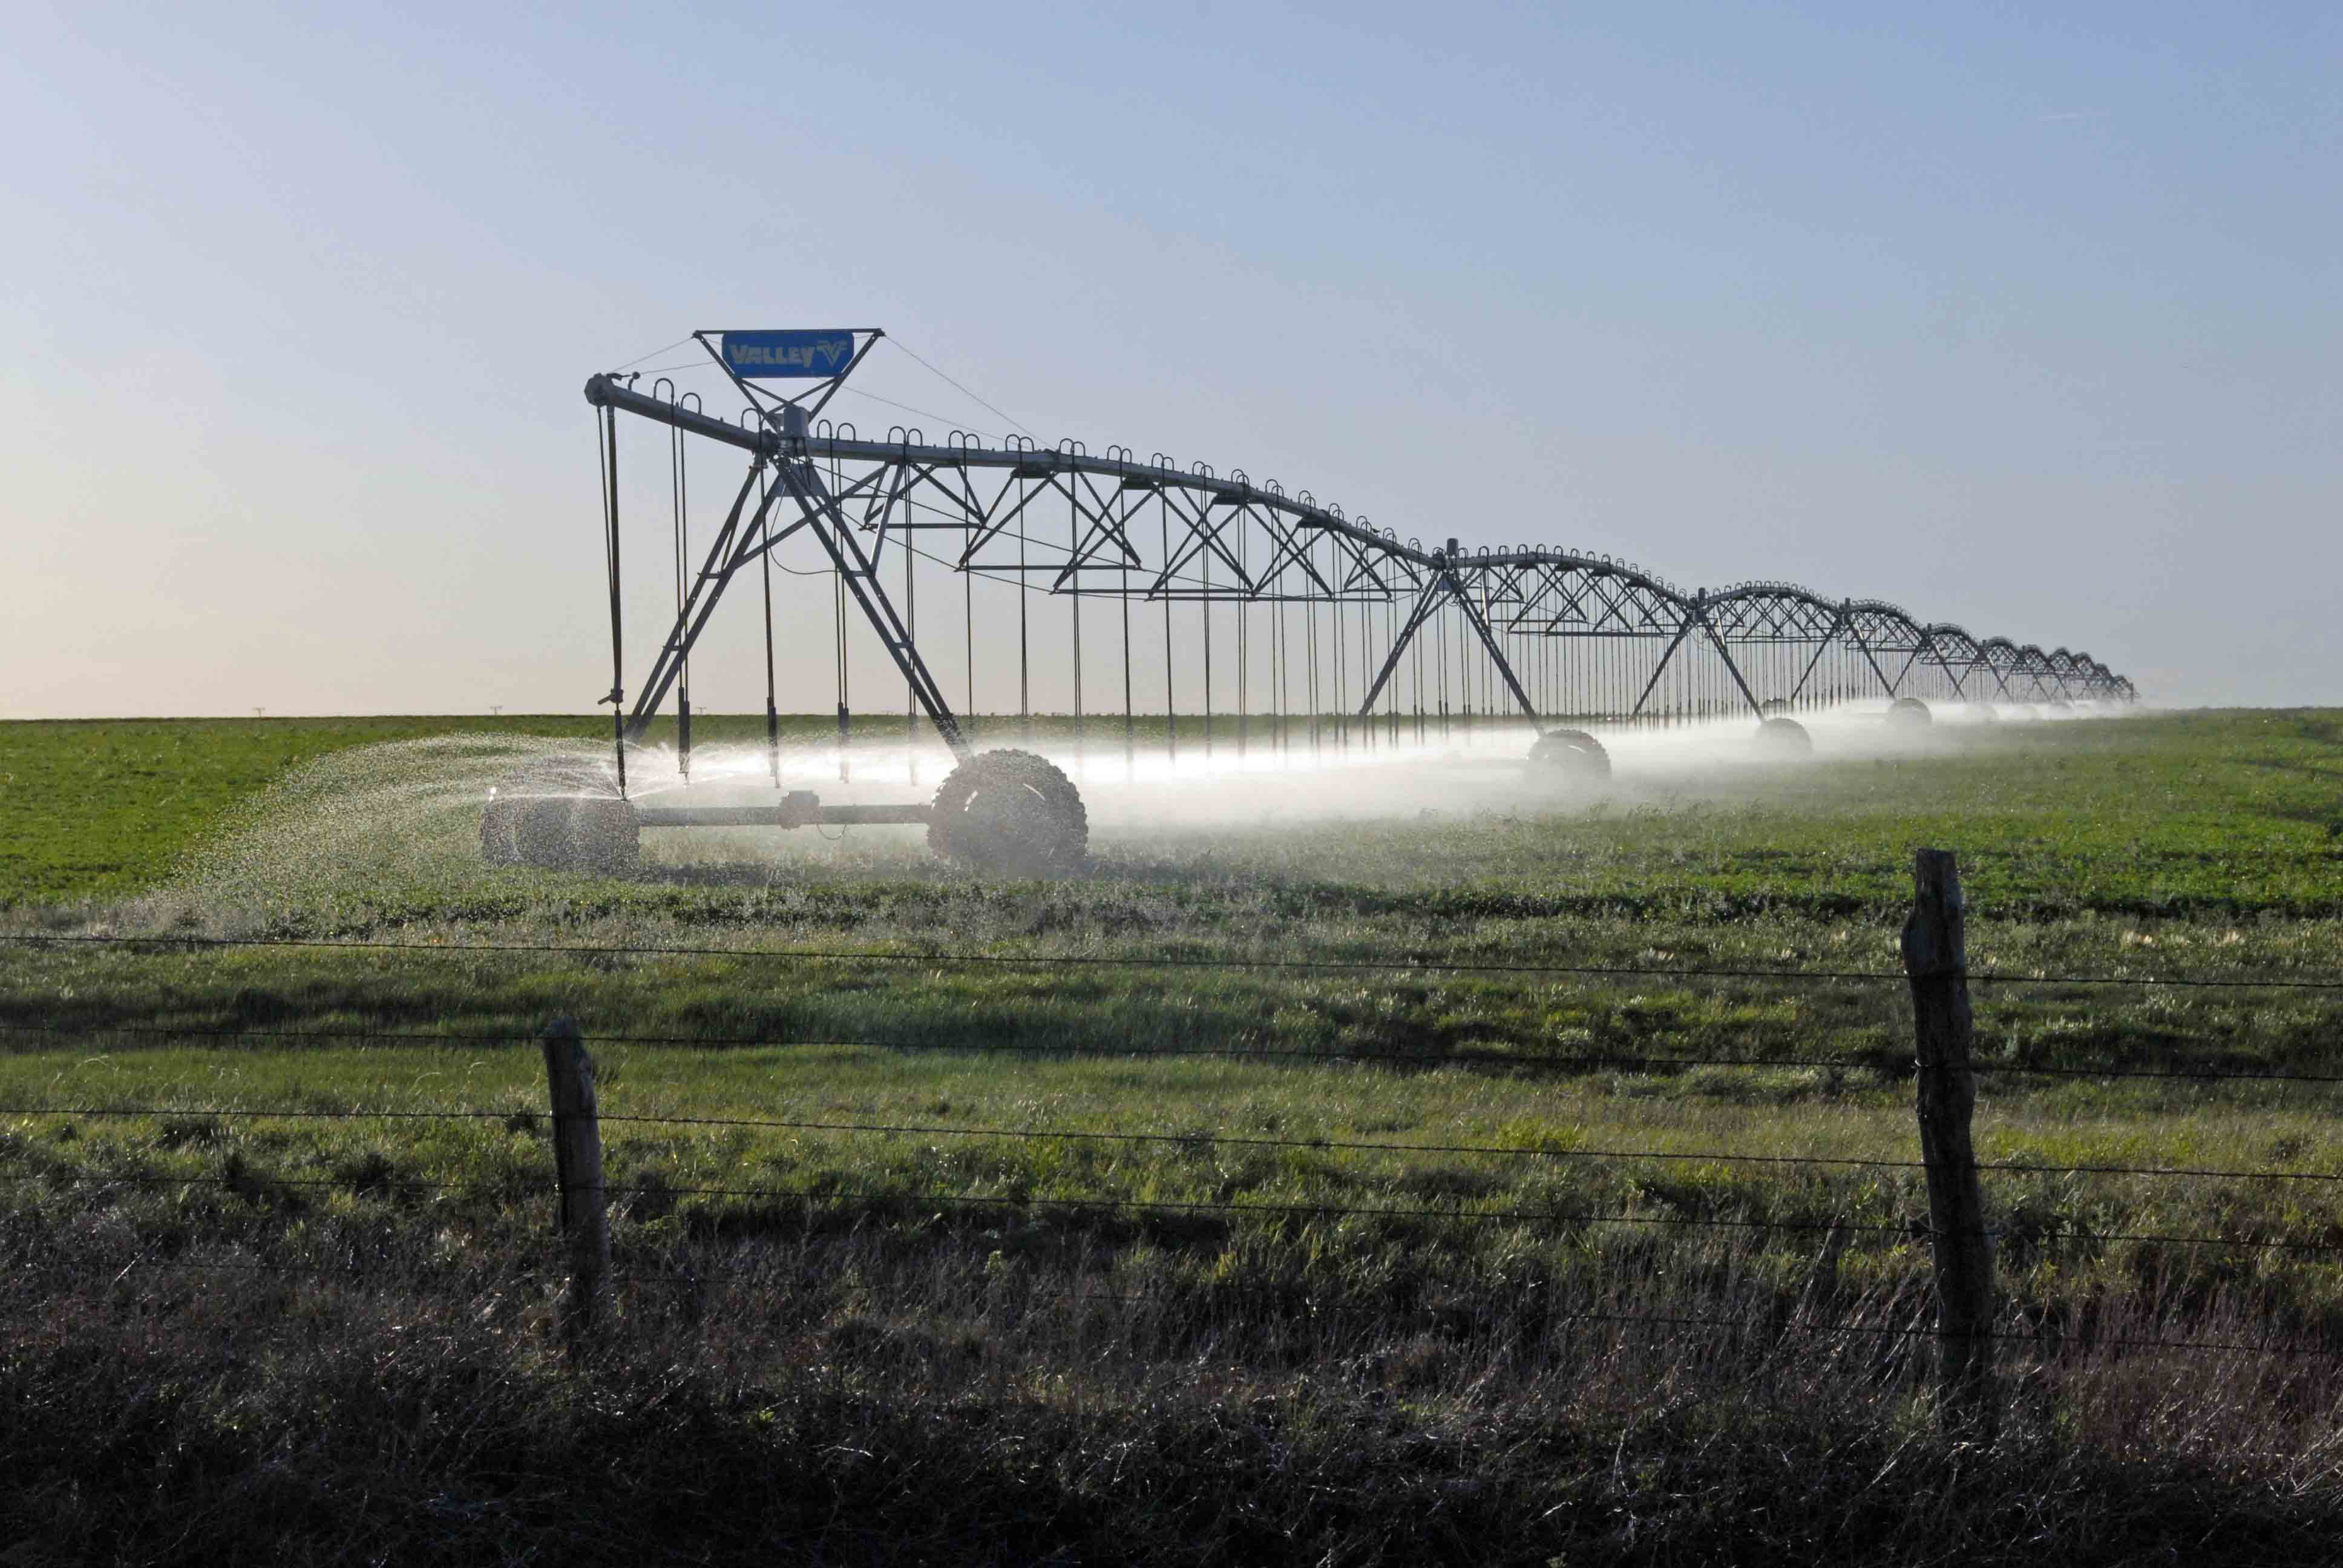 Irrigating a Texas cotton field